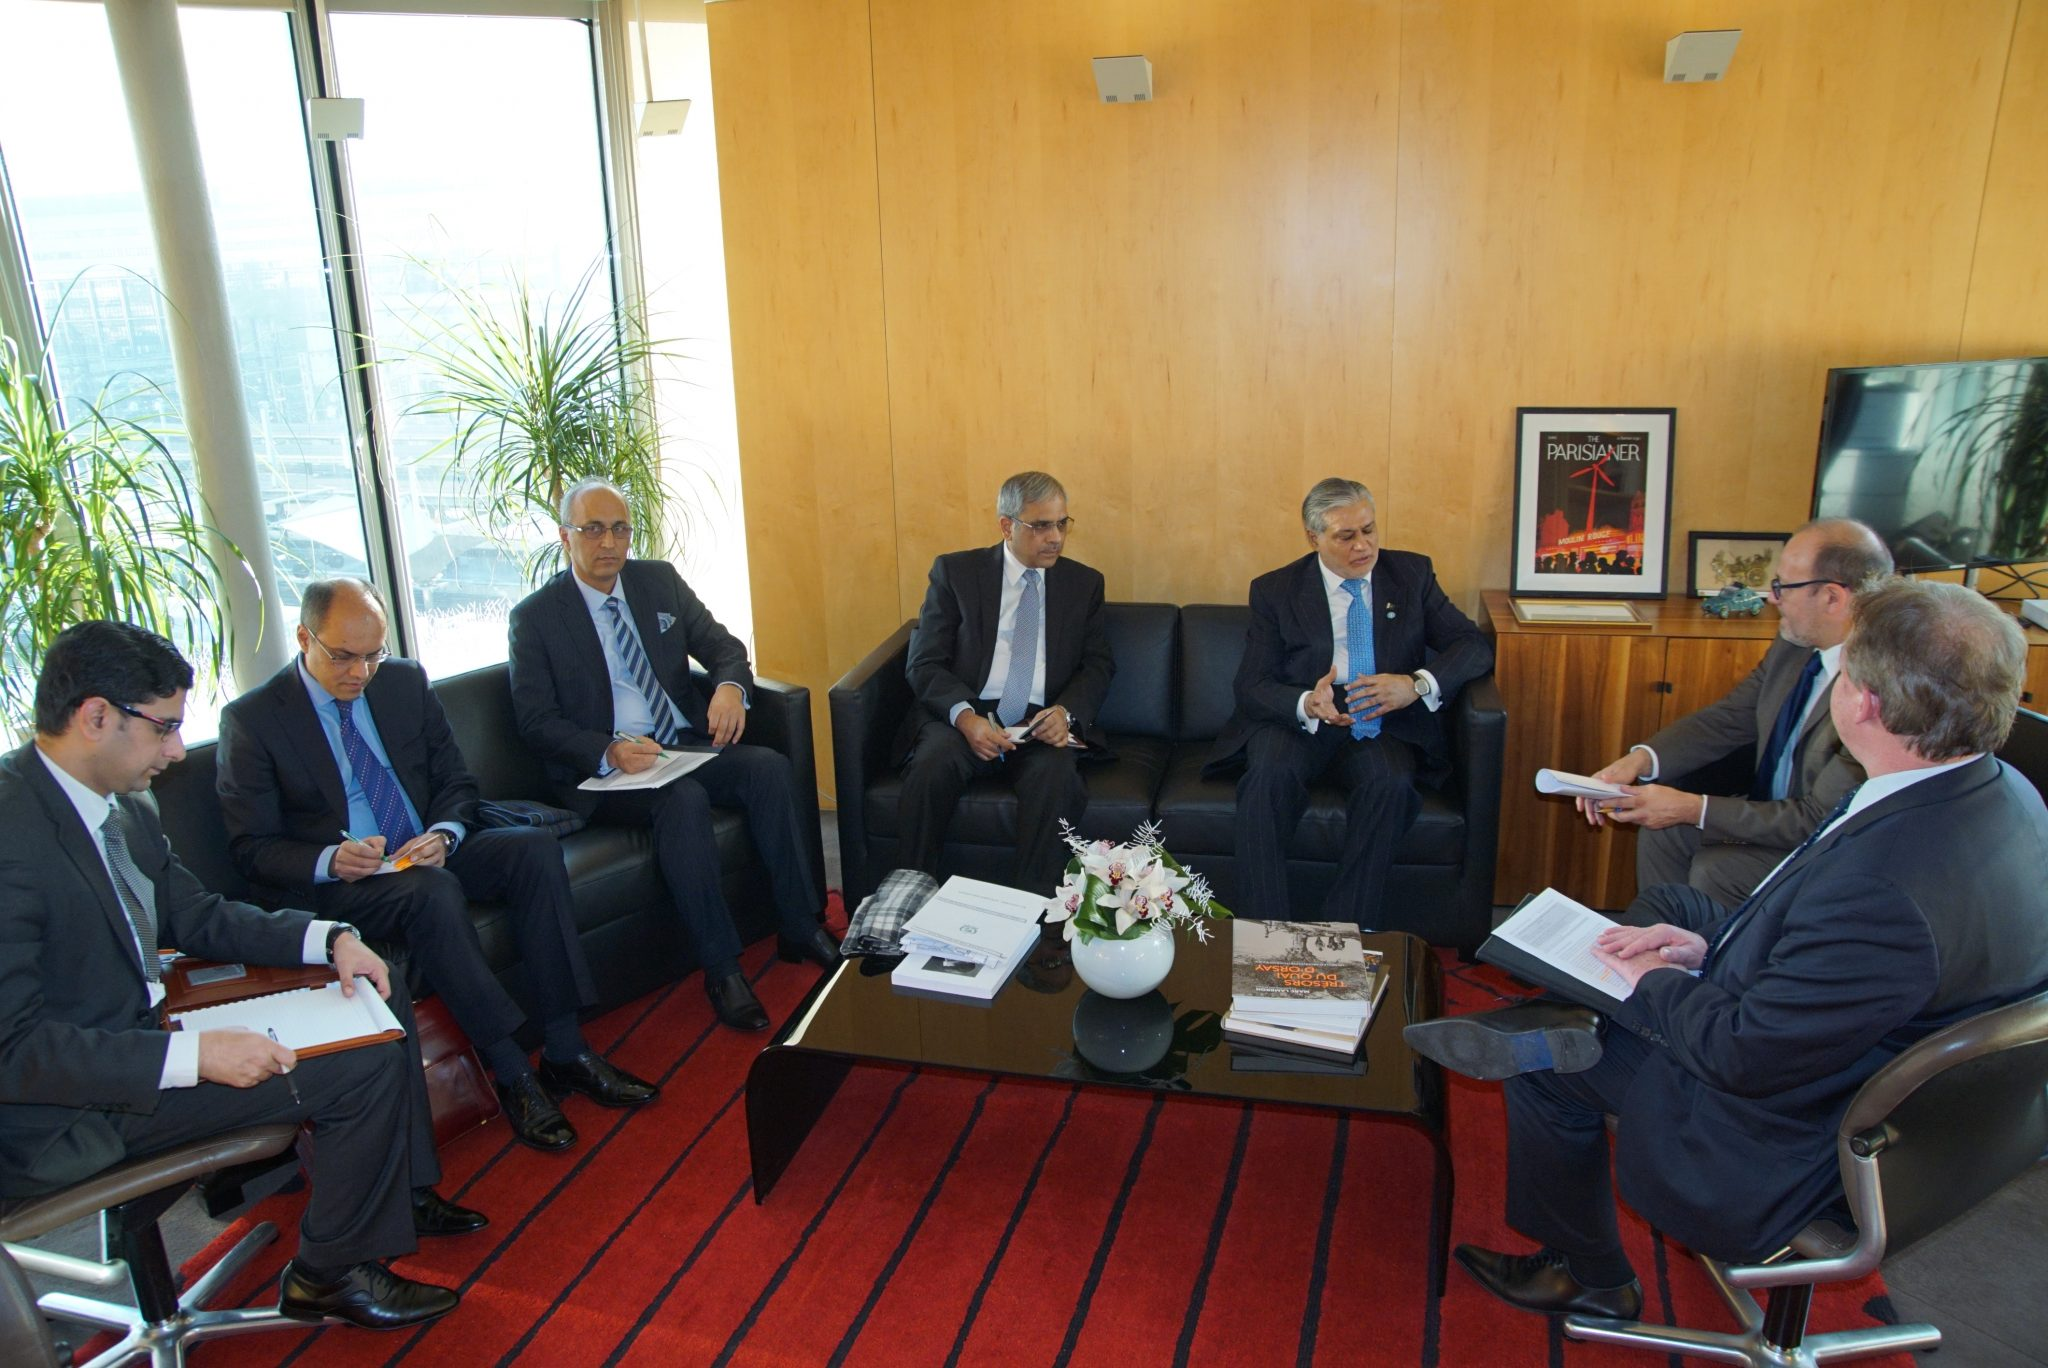 senator-mohammad-ishaq-dar-federal-minister-for-finance-and-economic-affairs-of-pakistan-is-meeting-with-mr-remy-rioux-ceo-of-french-development-agency-afd-in-afd-headquarters-paris-france-t